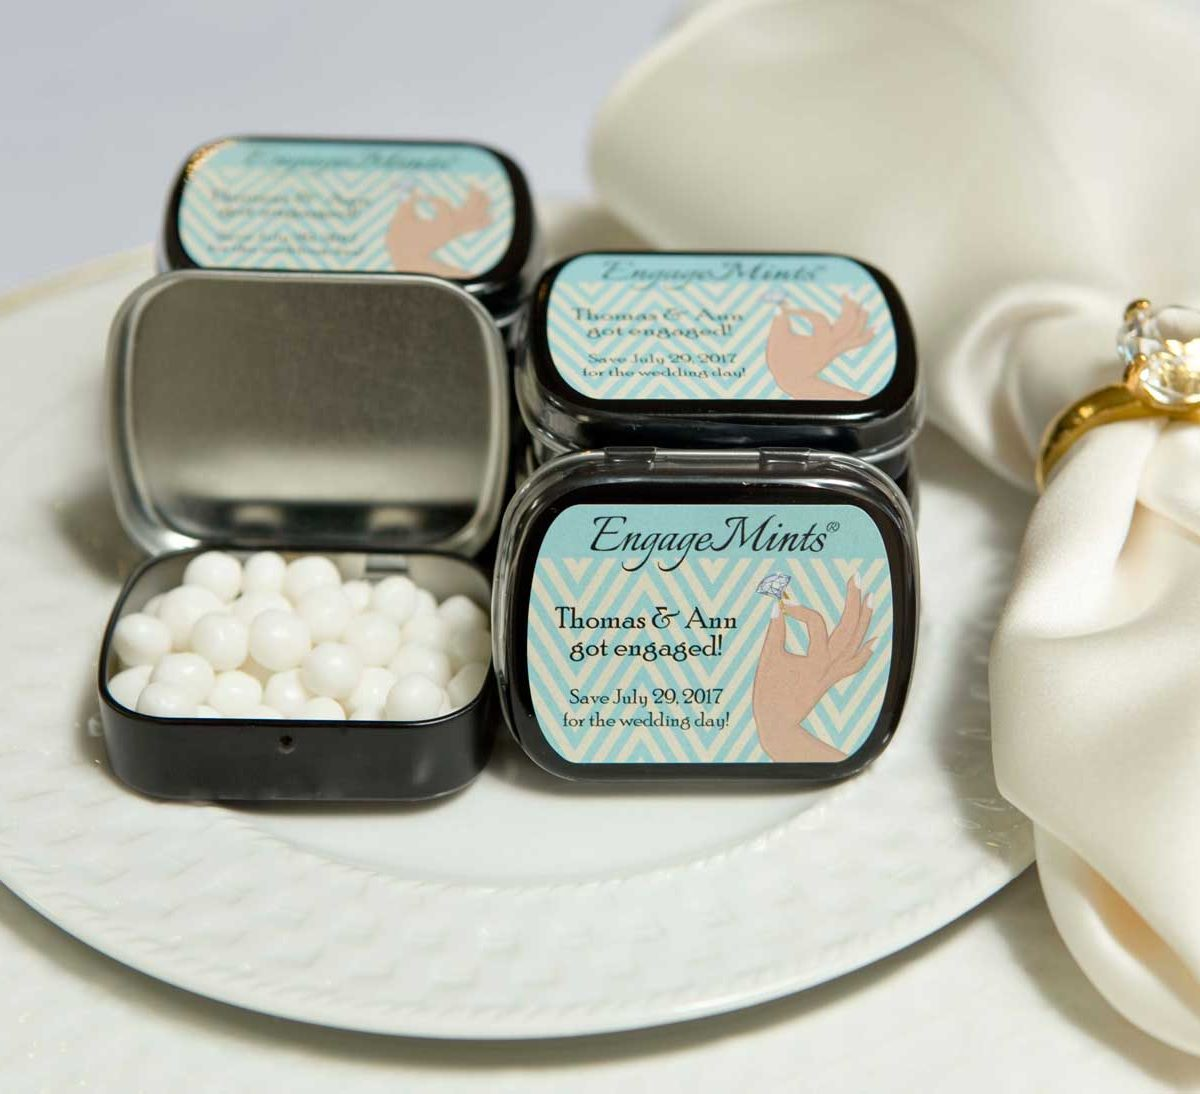 Engagement Mint Tins Sweetly Wrapped Occasions